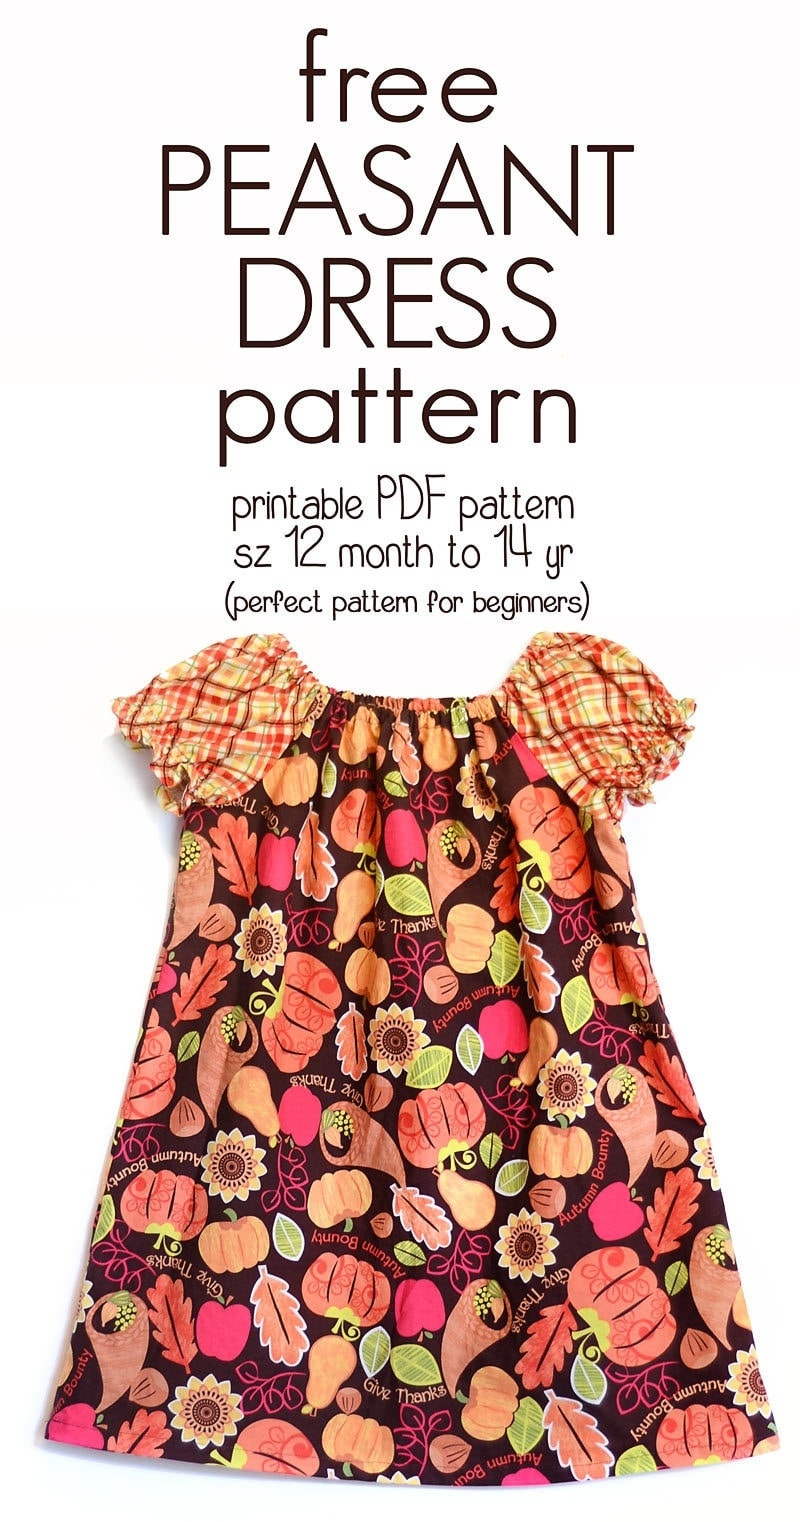 Learn How To Sew A Peasant Dress With This Free Peasant Dress - Free Printable Sewing Patterns For Kids